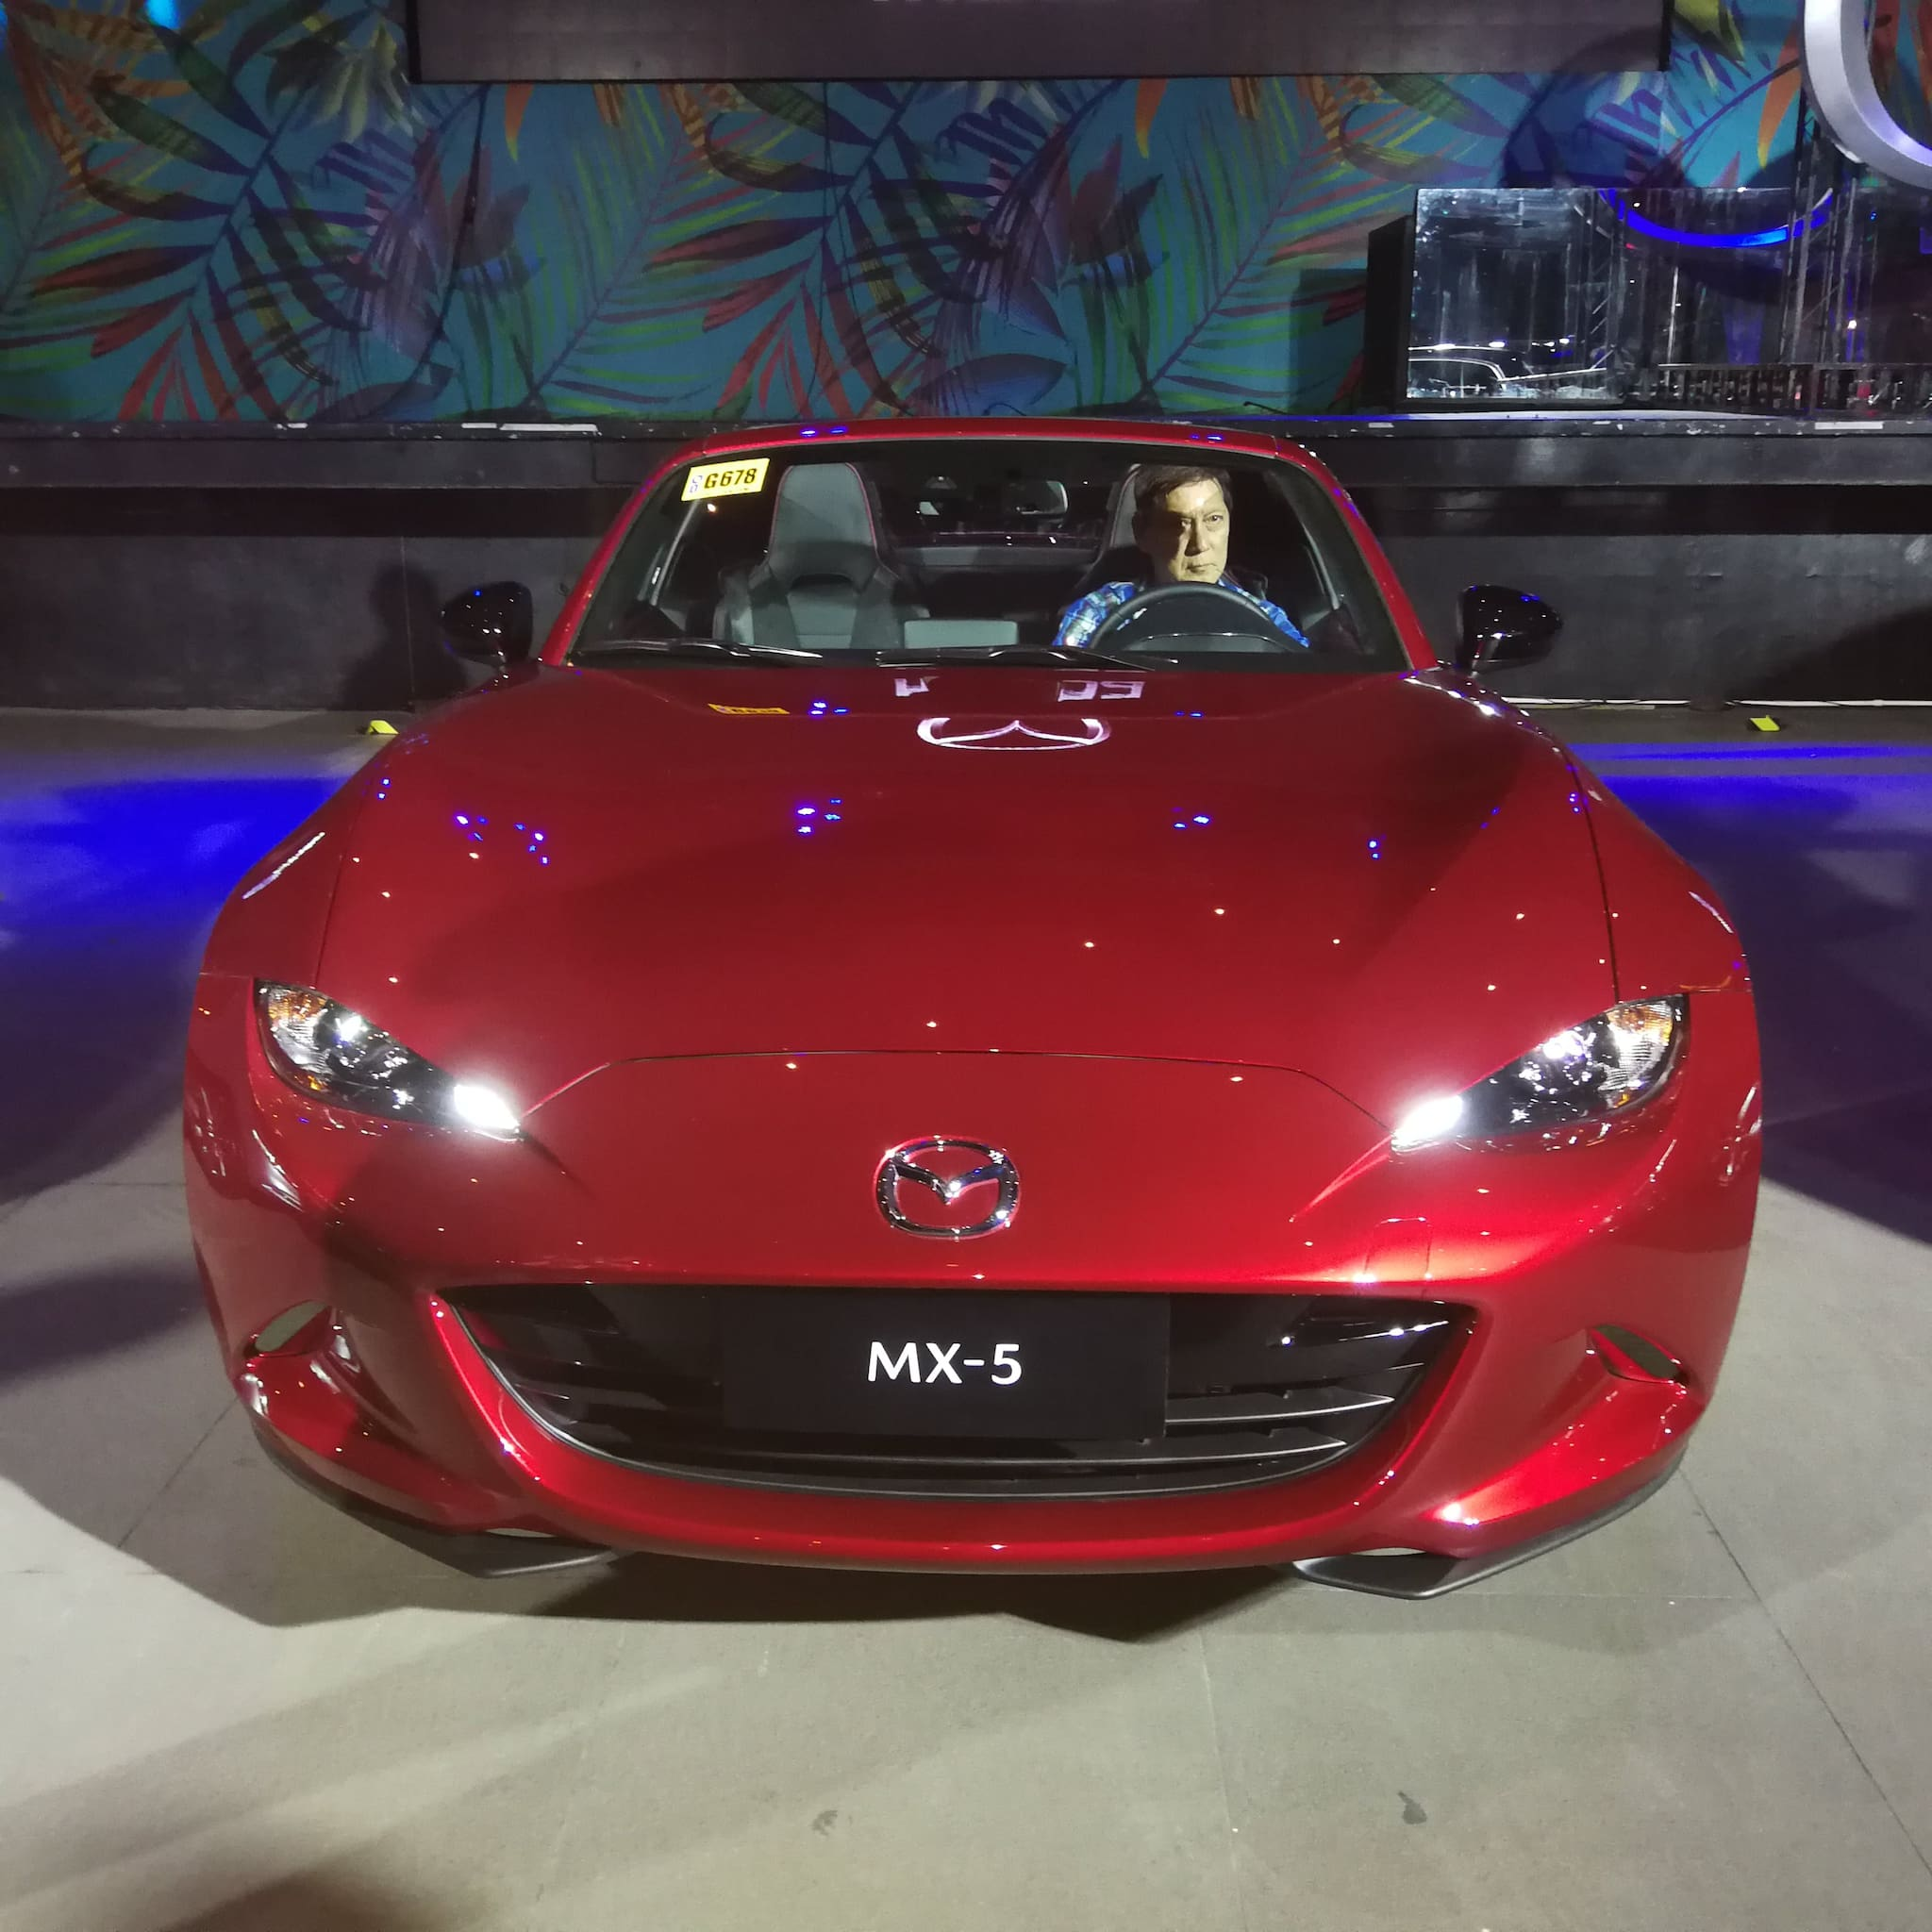 Sneak Preview: Mazda PH to Reveal 3 New Models at 2018 PIMS